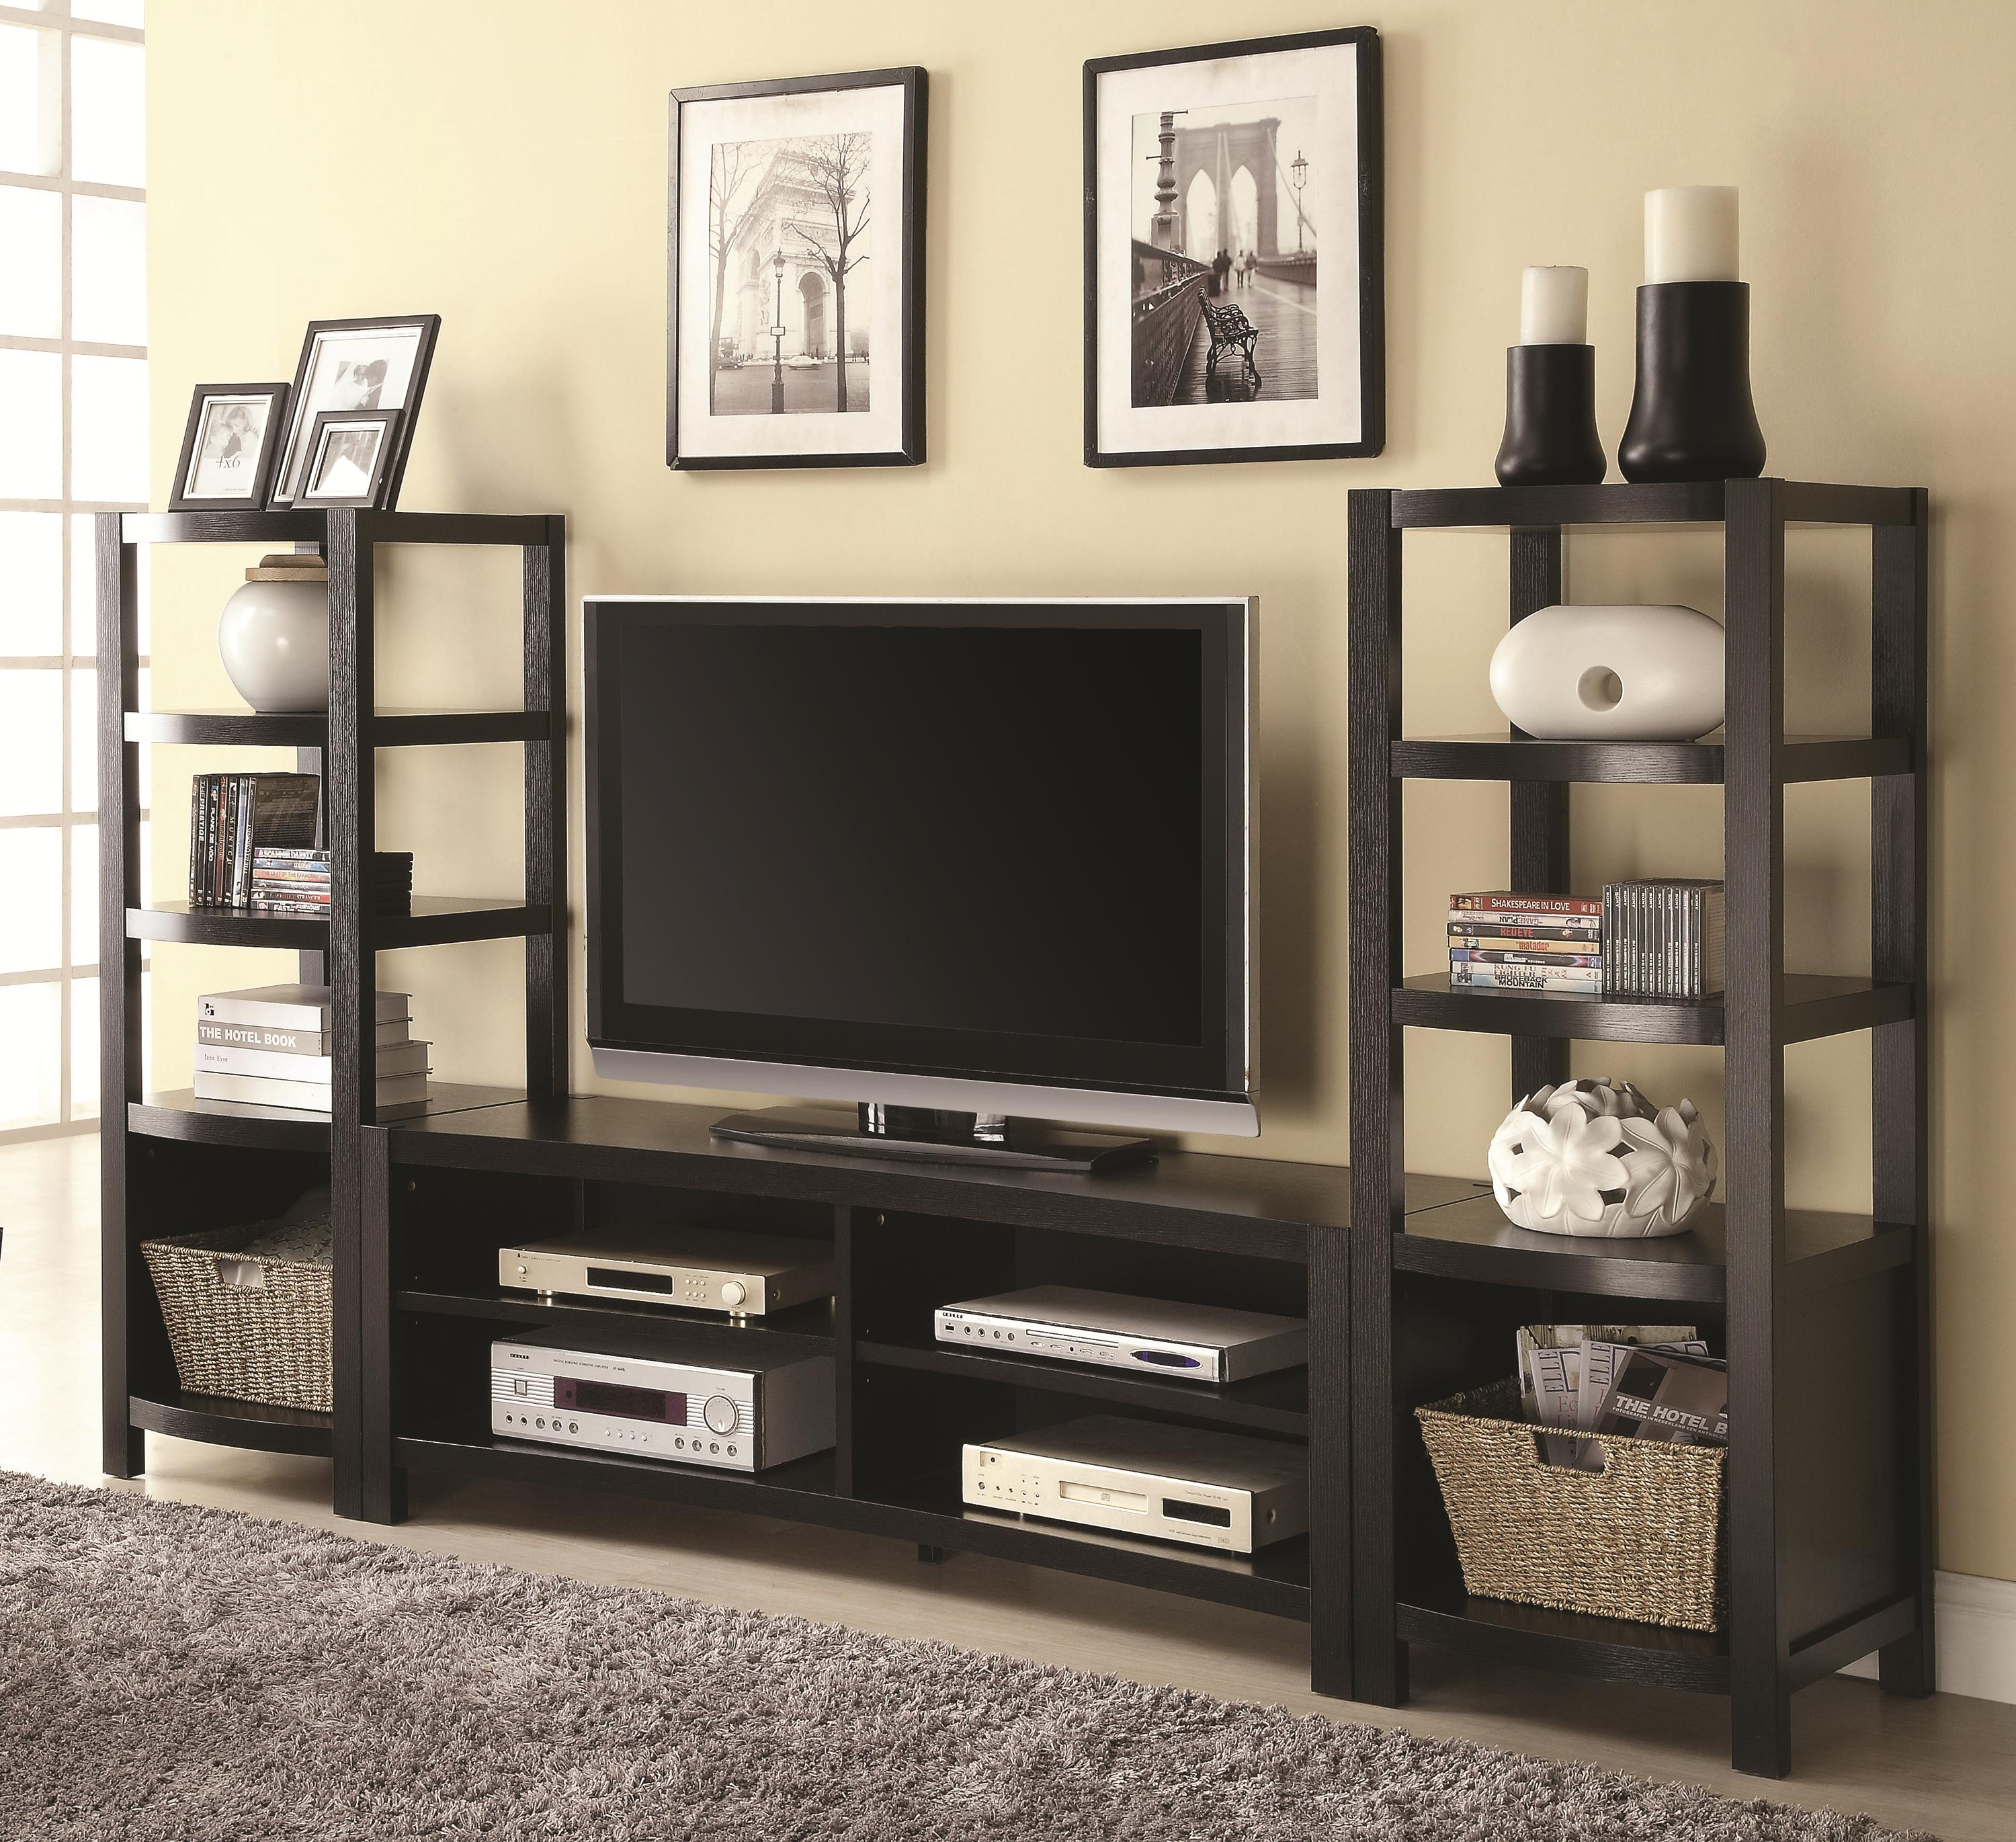 Tv Units Entertainment Units Curved Front Tv Console 2 Media Towers By Coaster At Dunk Bright Furniture